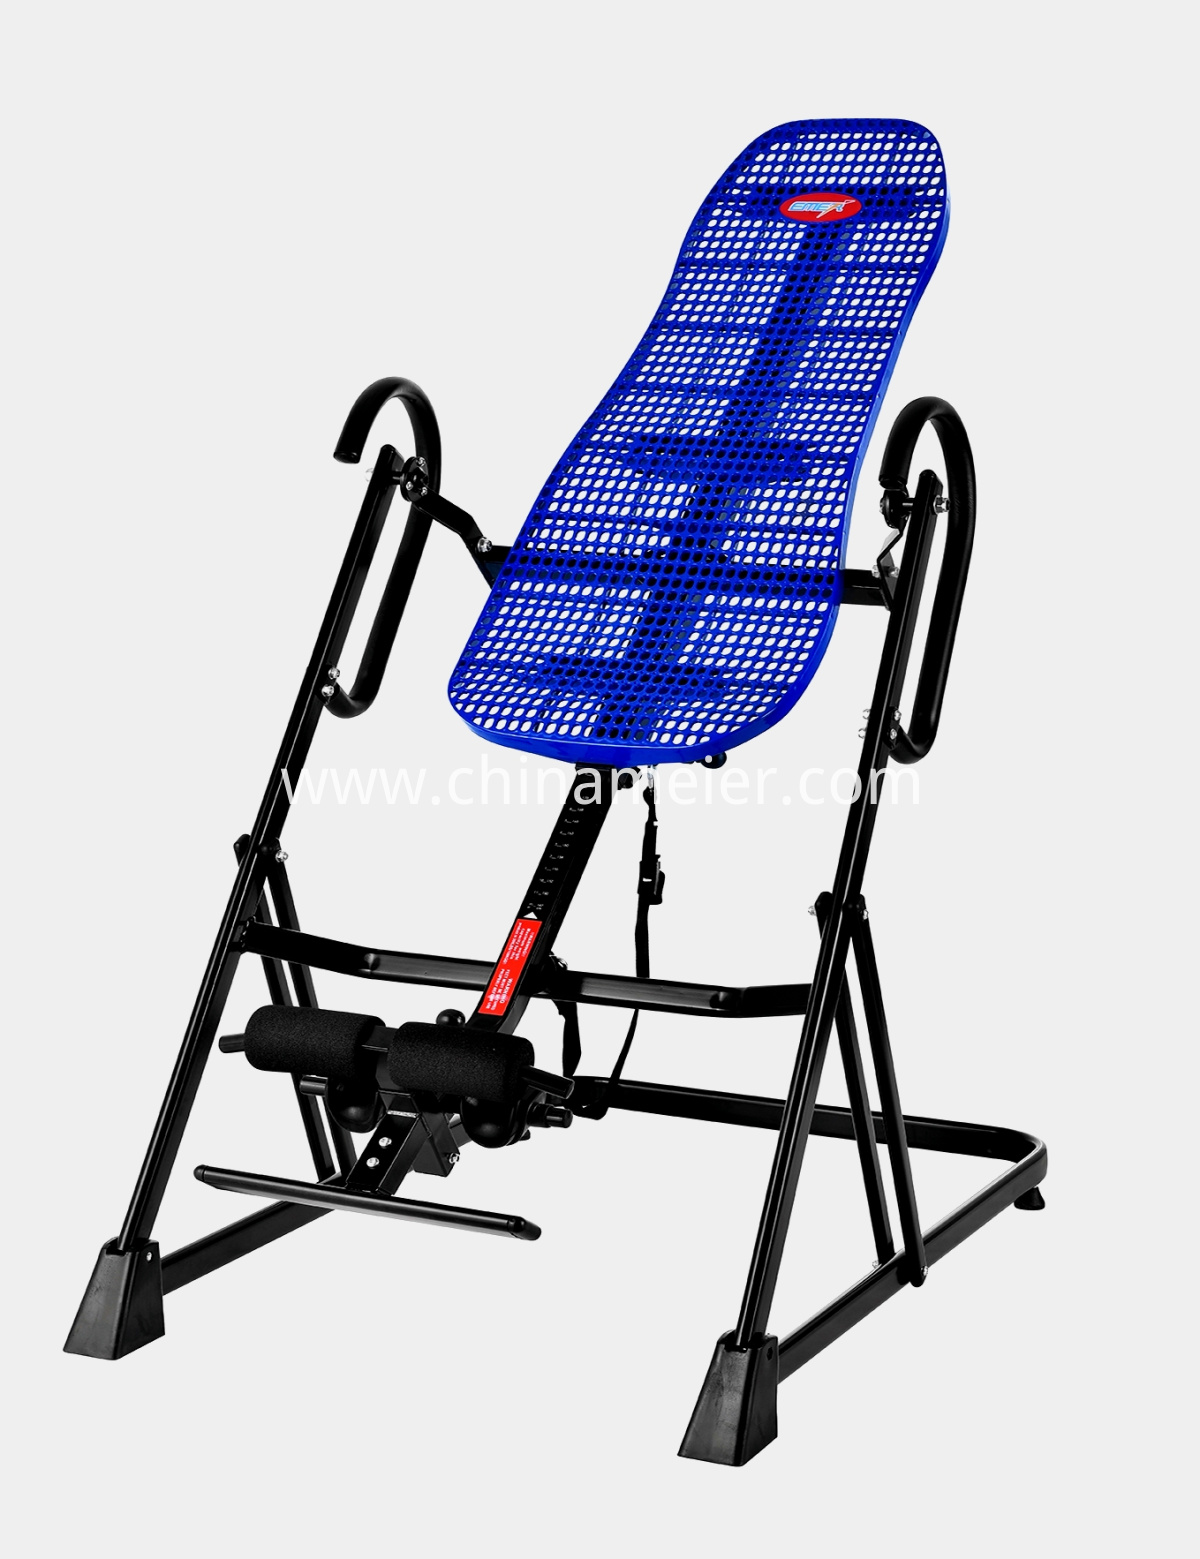 2018 New Multi-functional Inversion Table